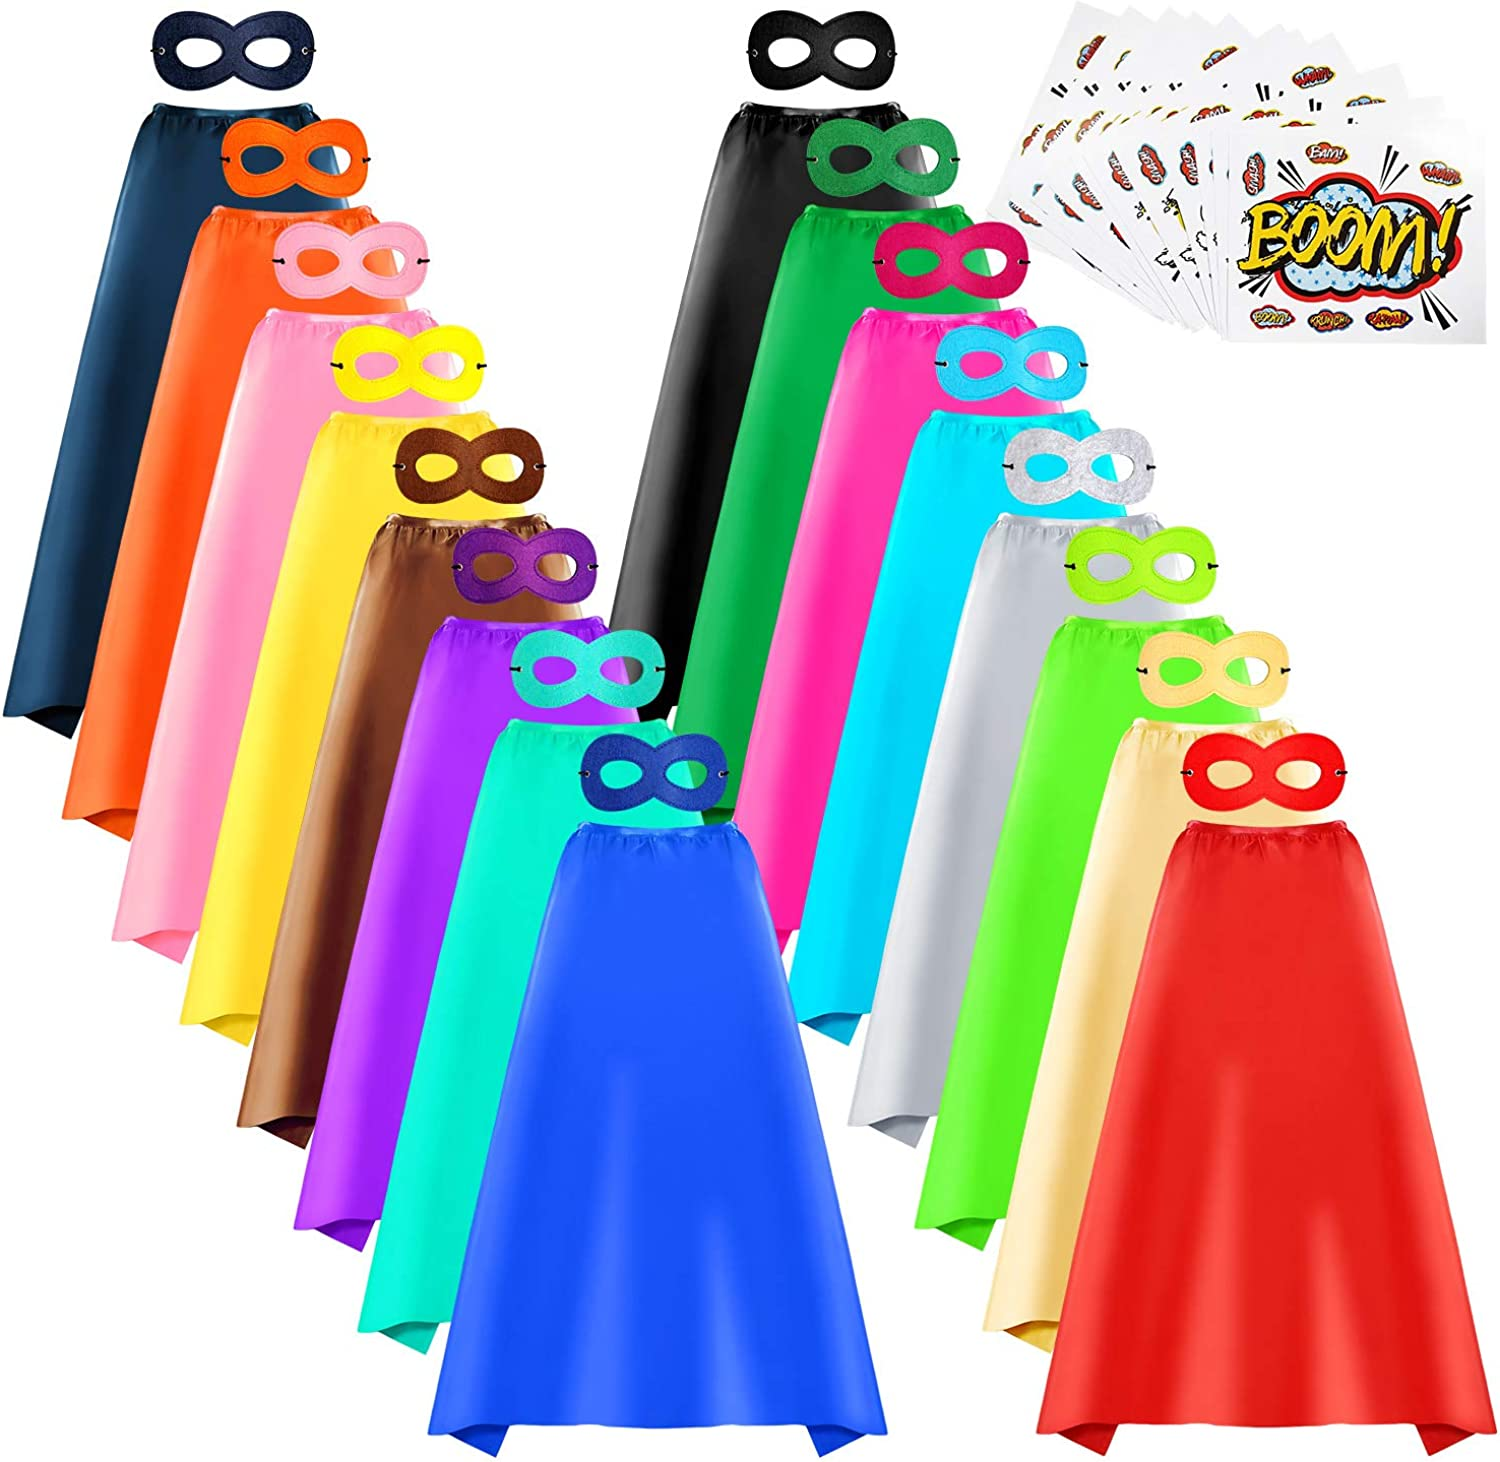 Lot of 10 Blank Capes Wholesale Capes. Adult Turquoise Capes